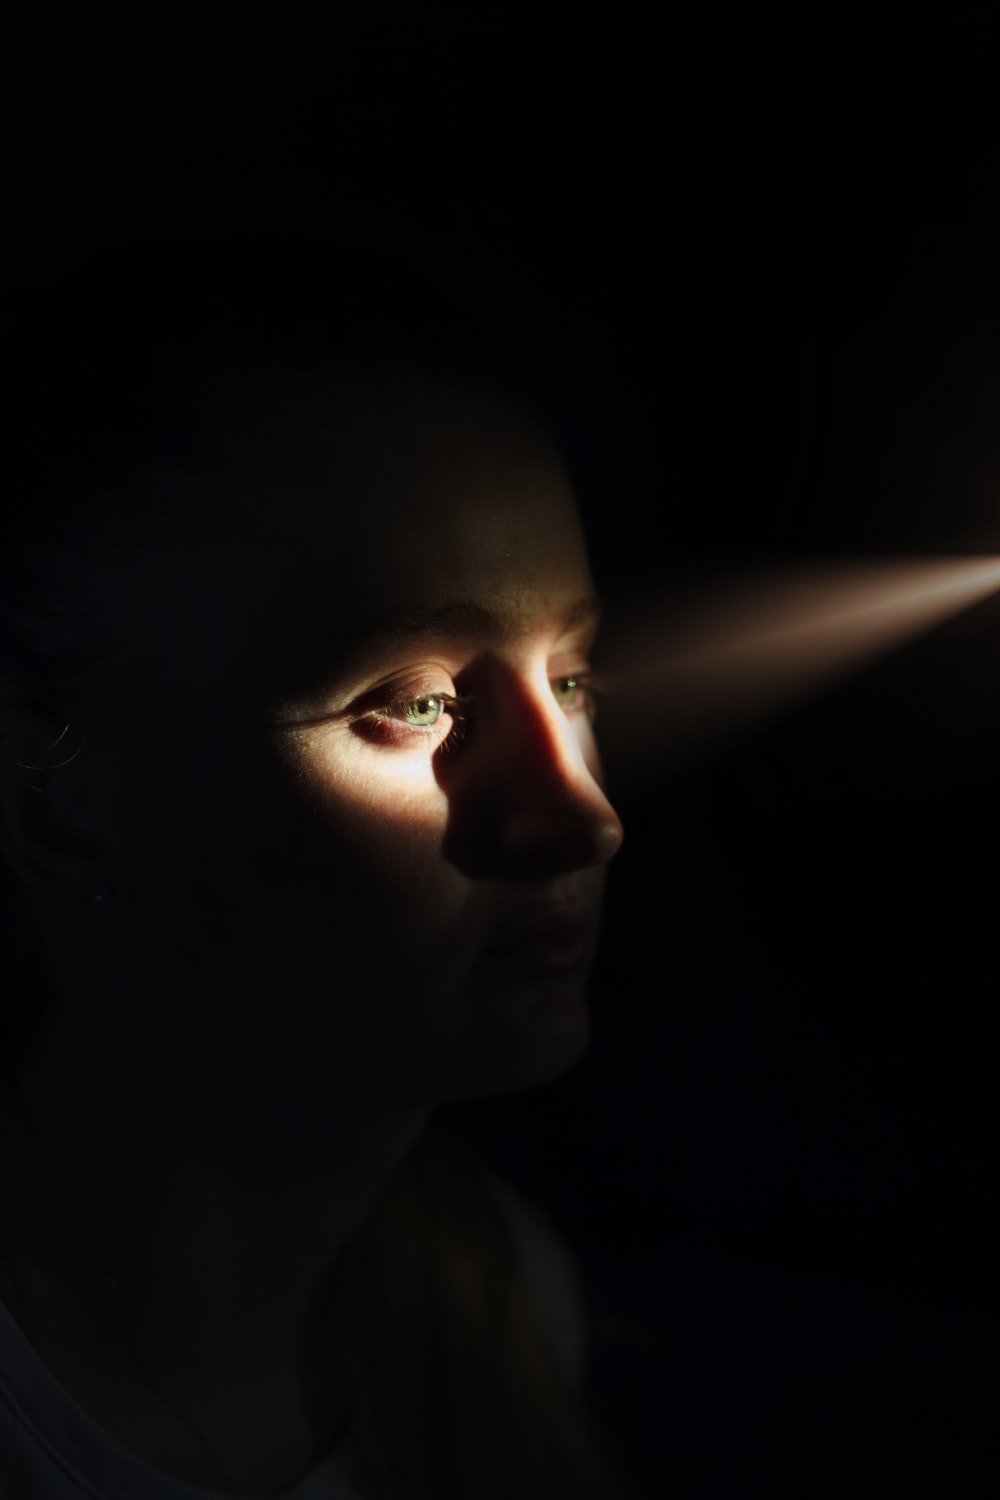 woman's face with sunlight on eyes